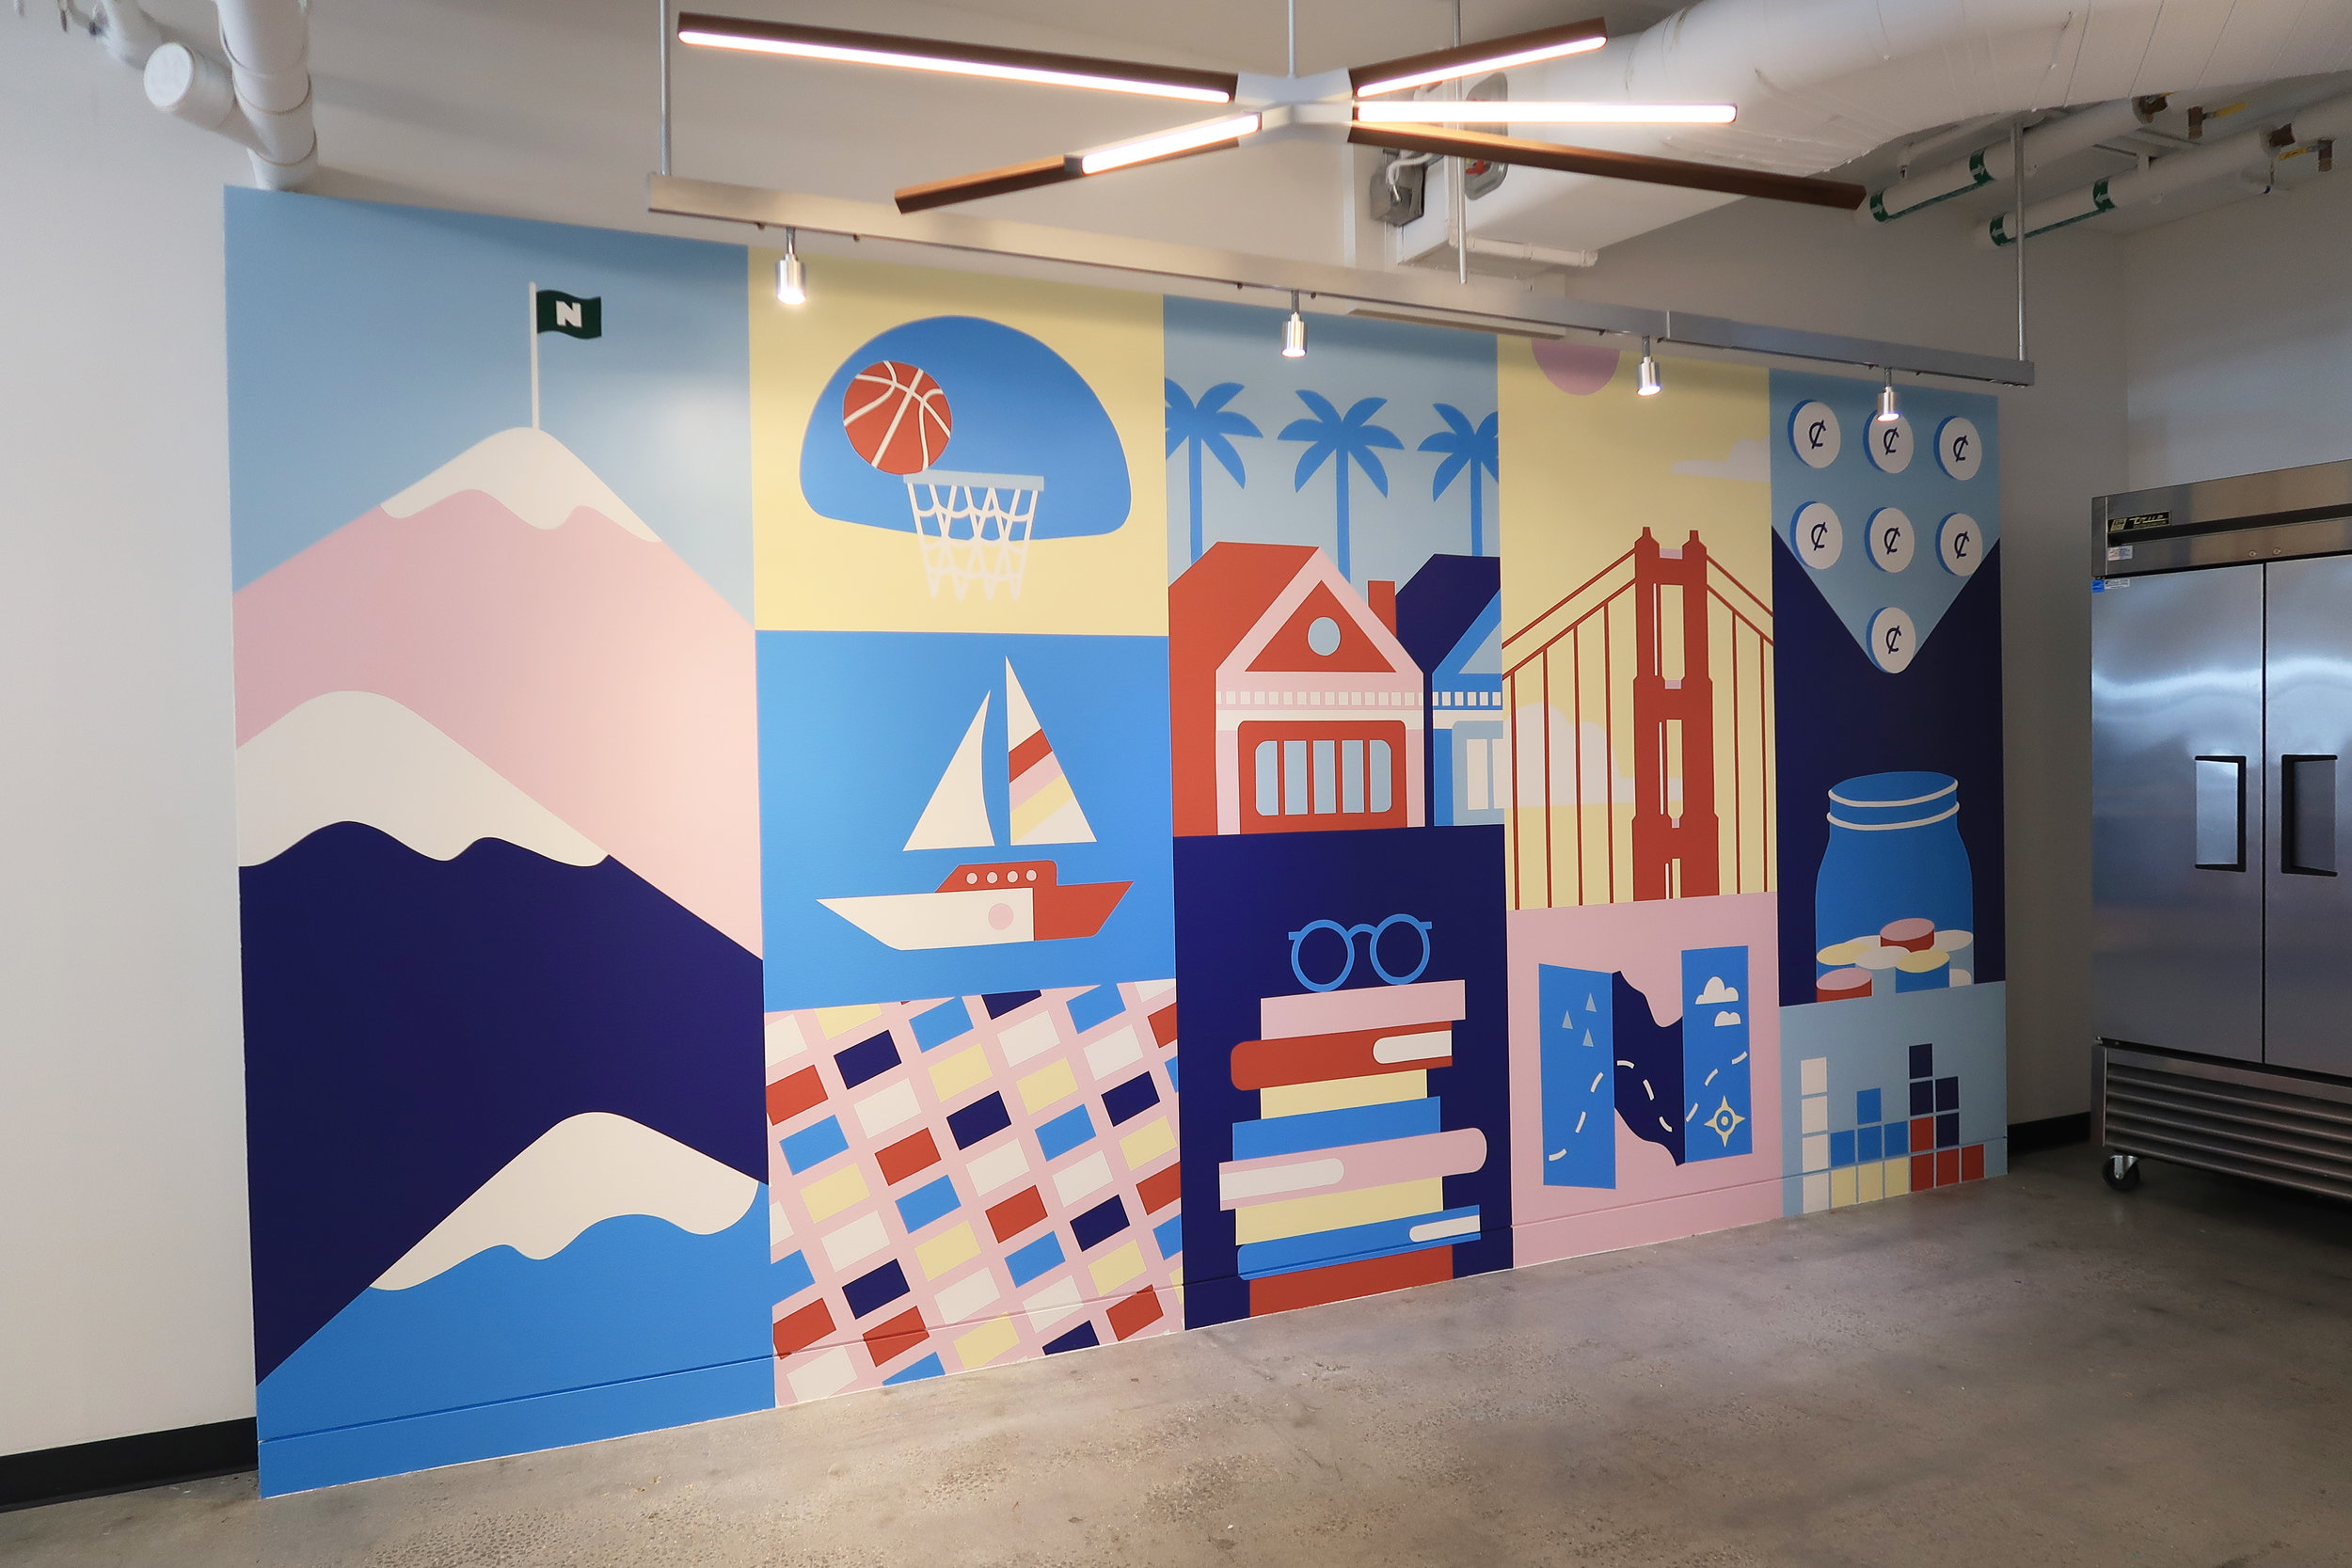 Office-commercial-mural-san-francisco-nerdwallet-wall-and-wall-mural-company_006.jpg